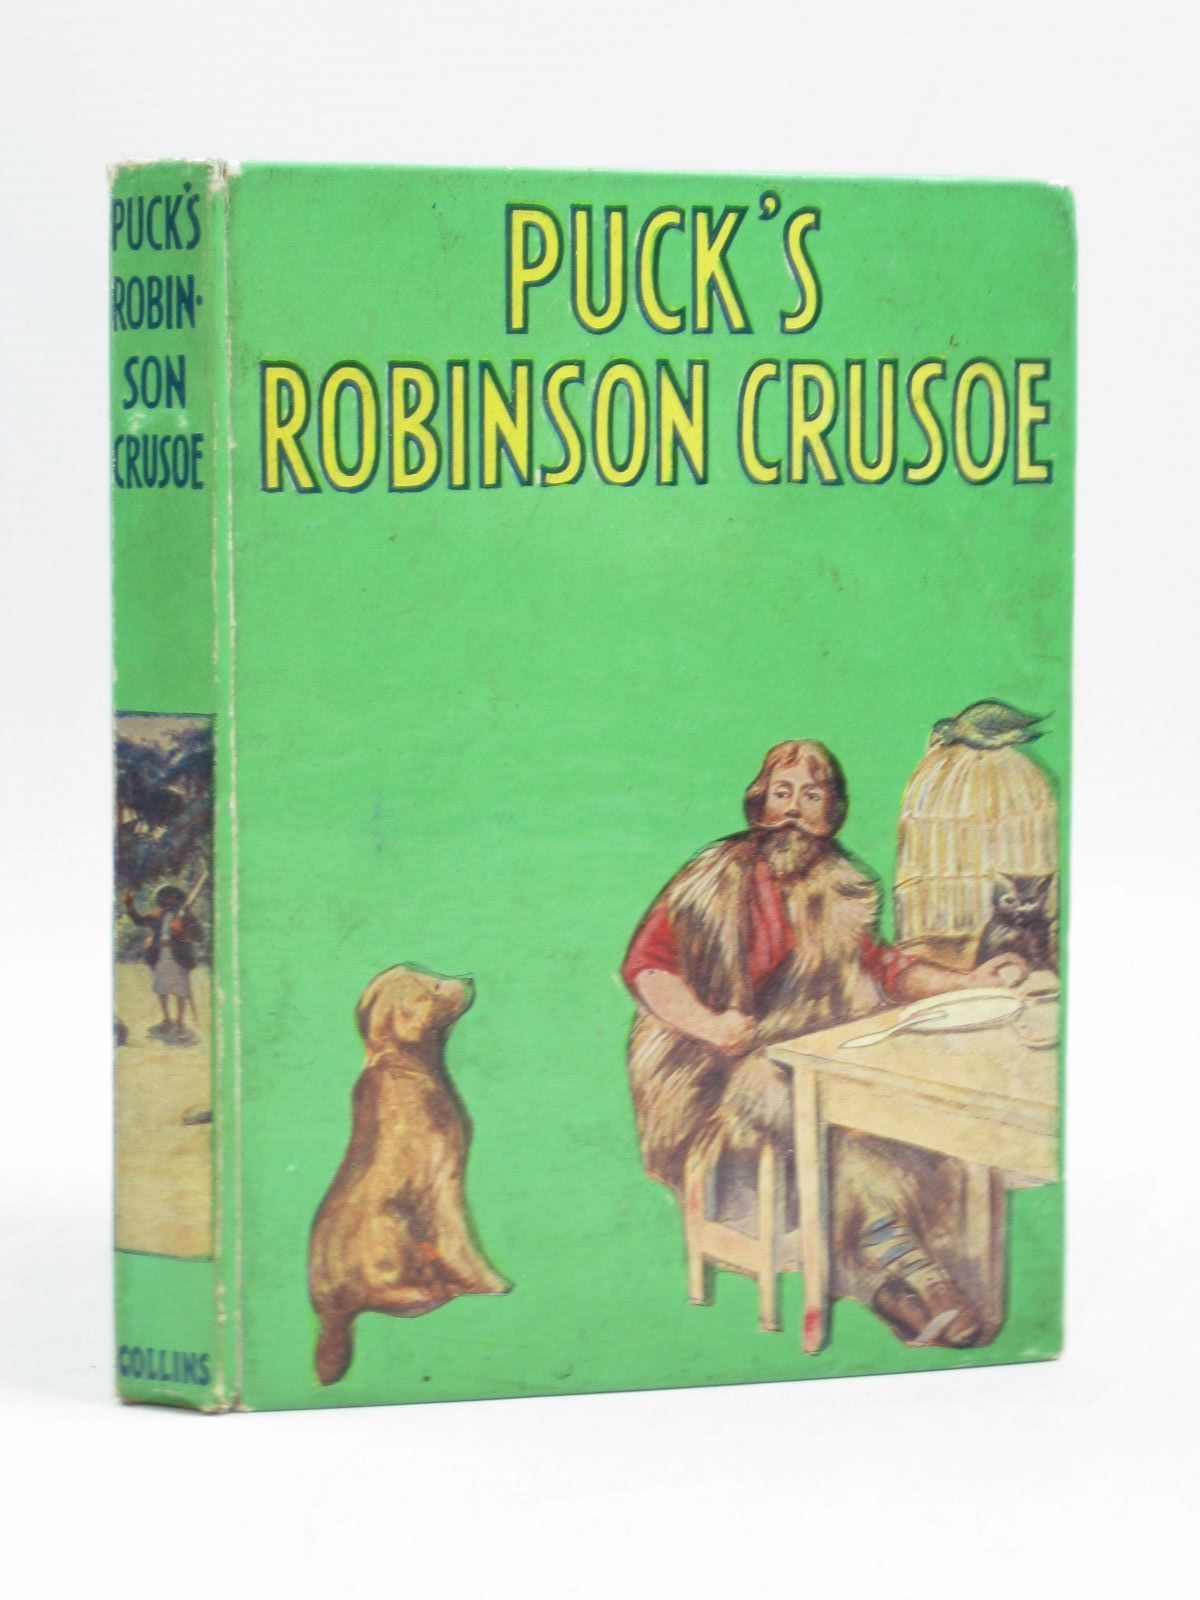 robinson crusoe by daniel defoe featured books stella rose s 10 00 photo of puck s robinson crusoe